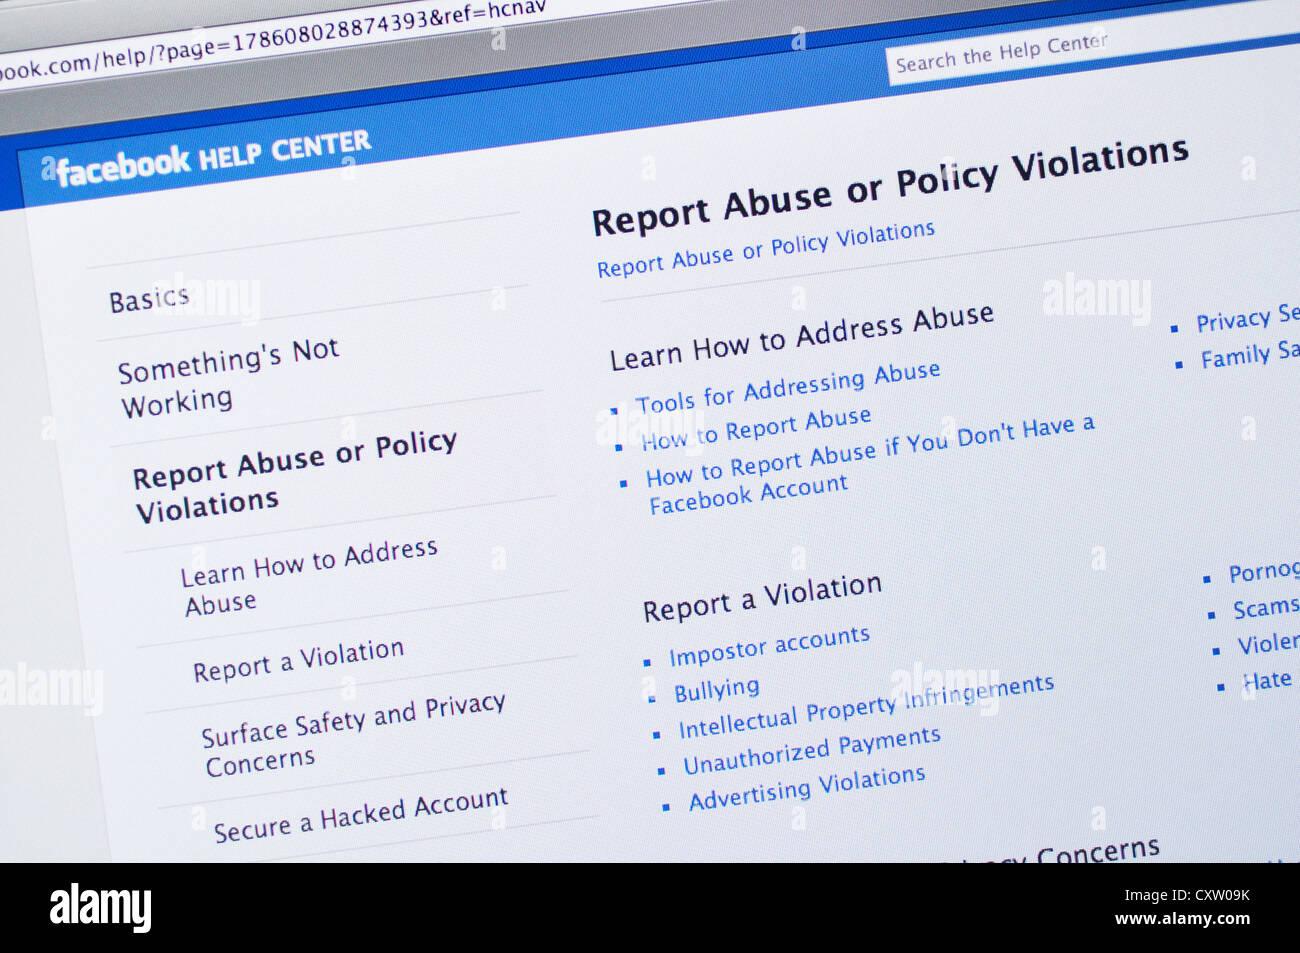 Facebook online social networking - help center and abuse